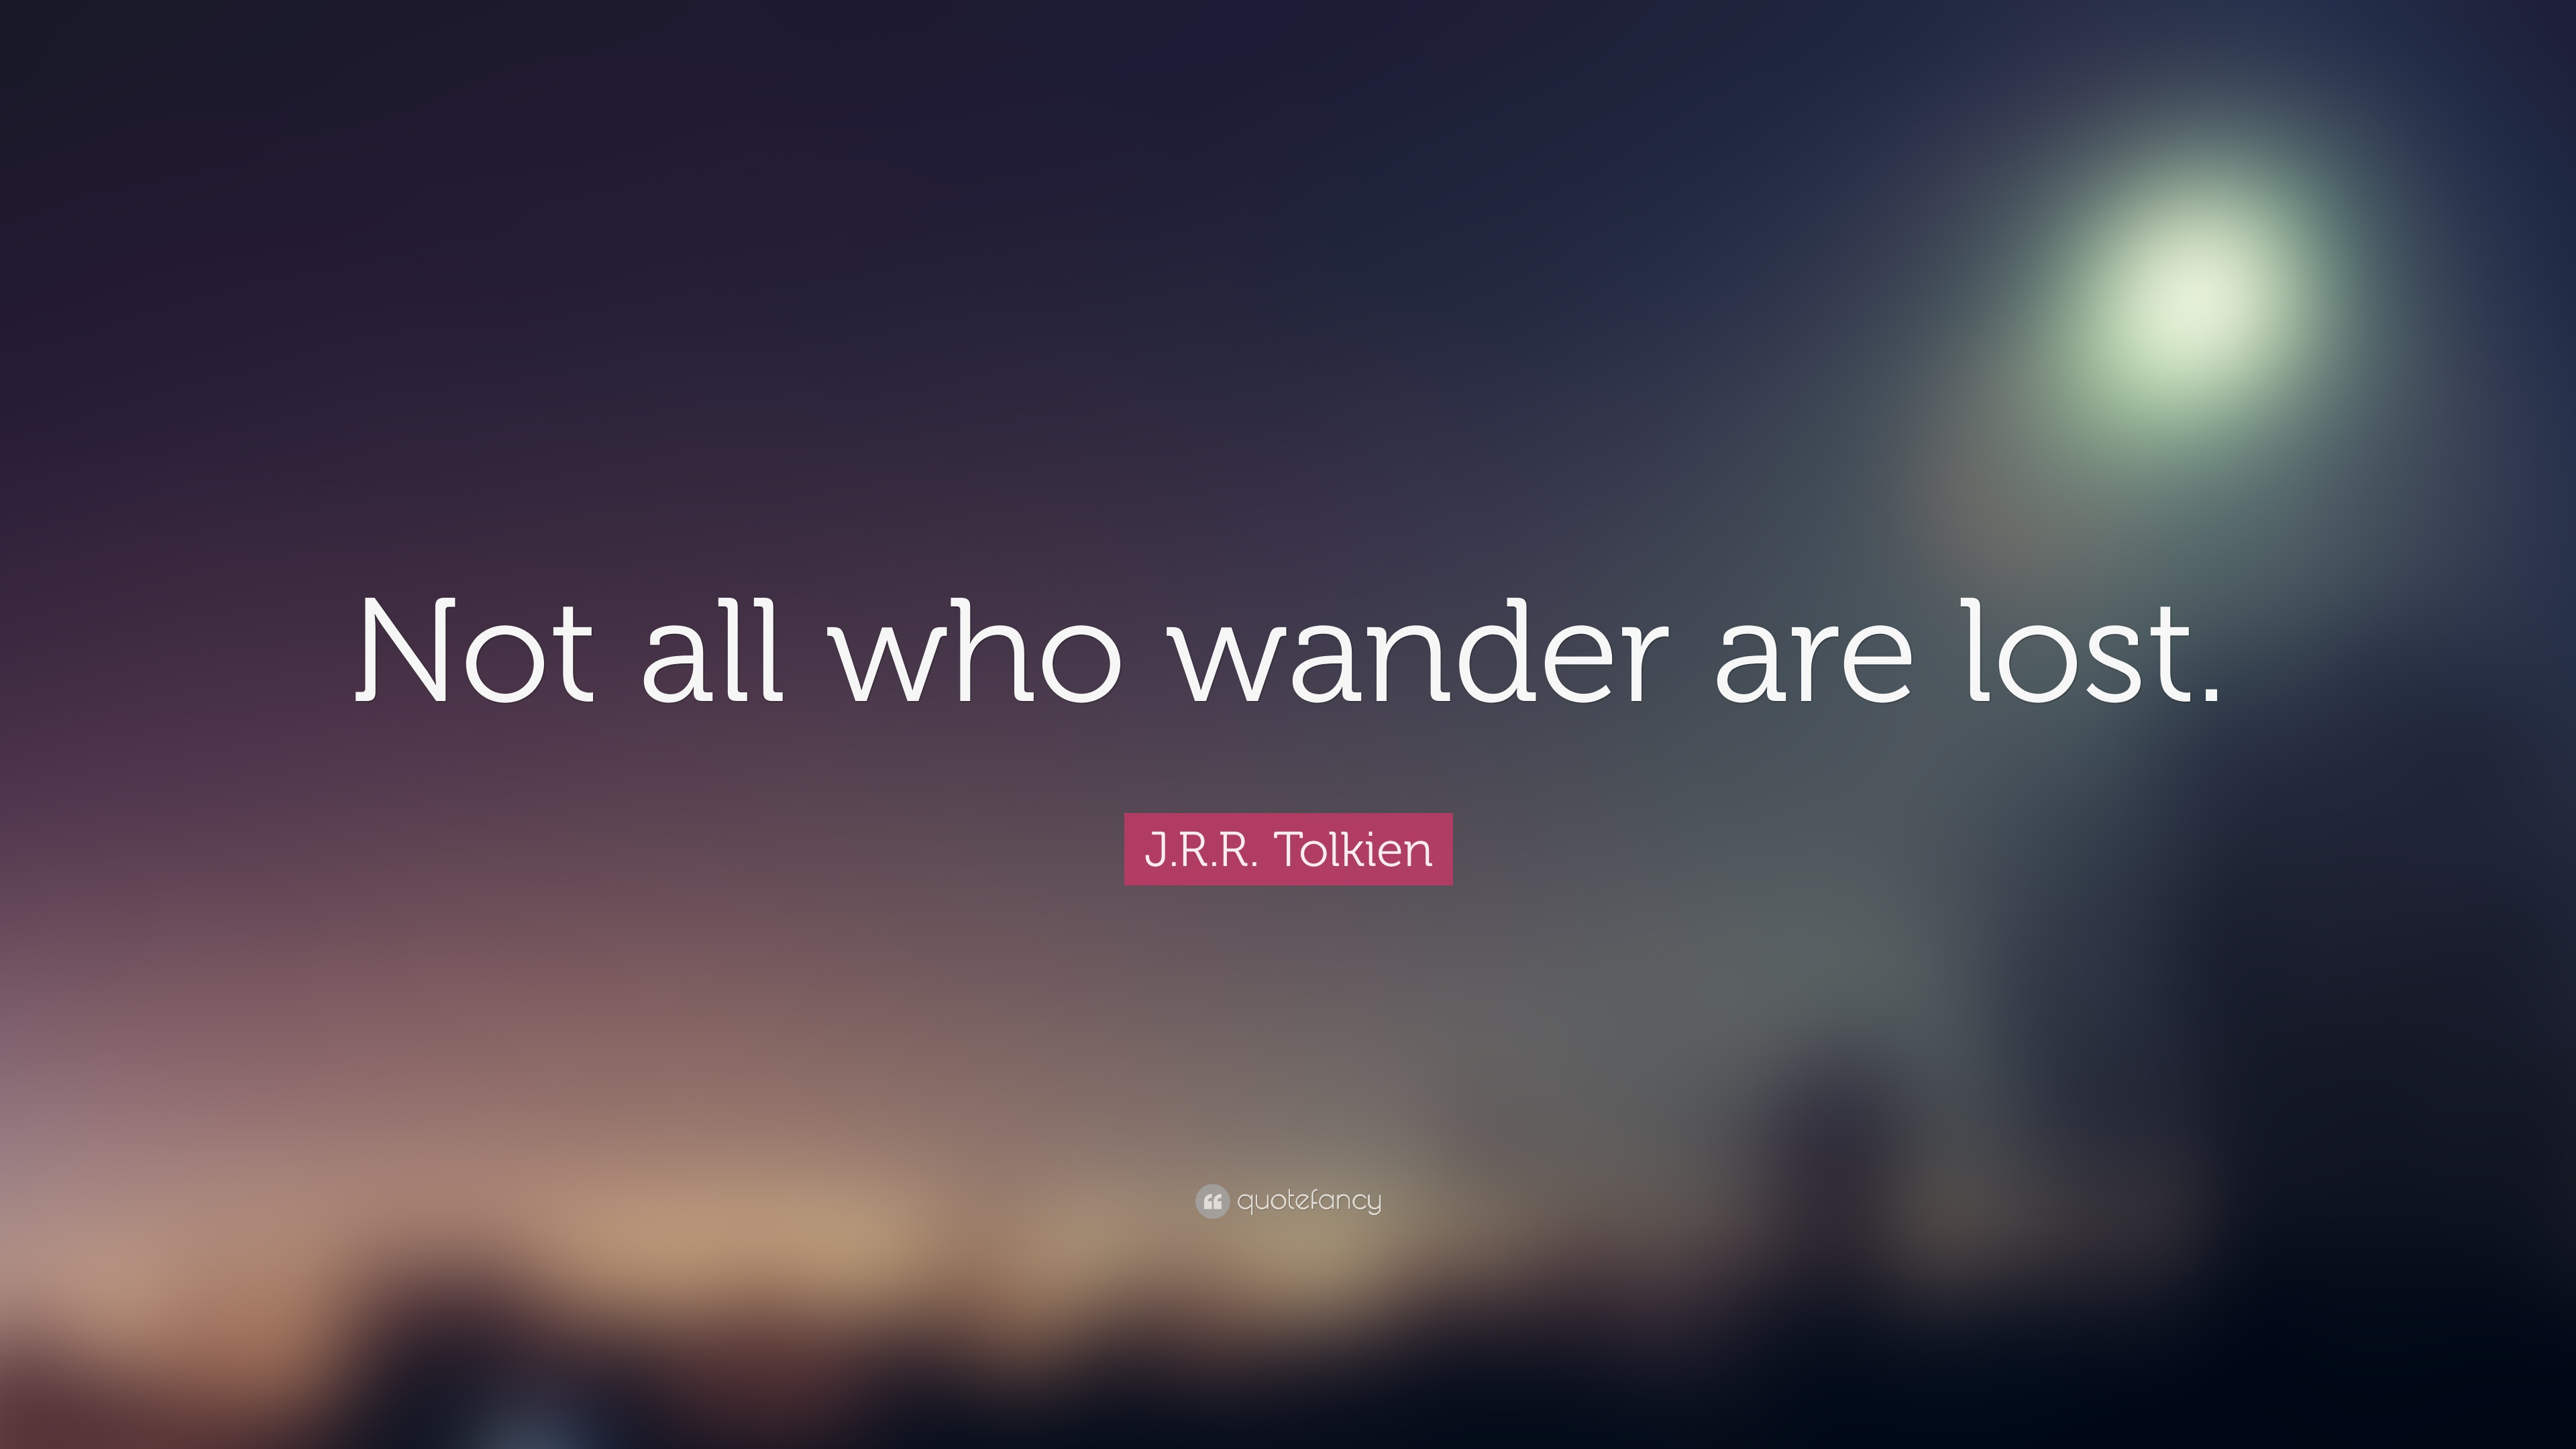 Jrr Tolkien Quotes About Life Jrr Tolkien Quotes Not All That Wander